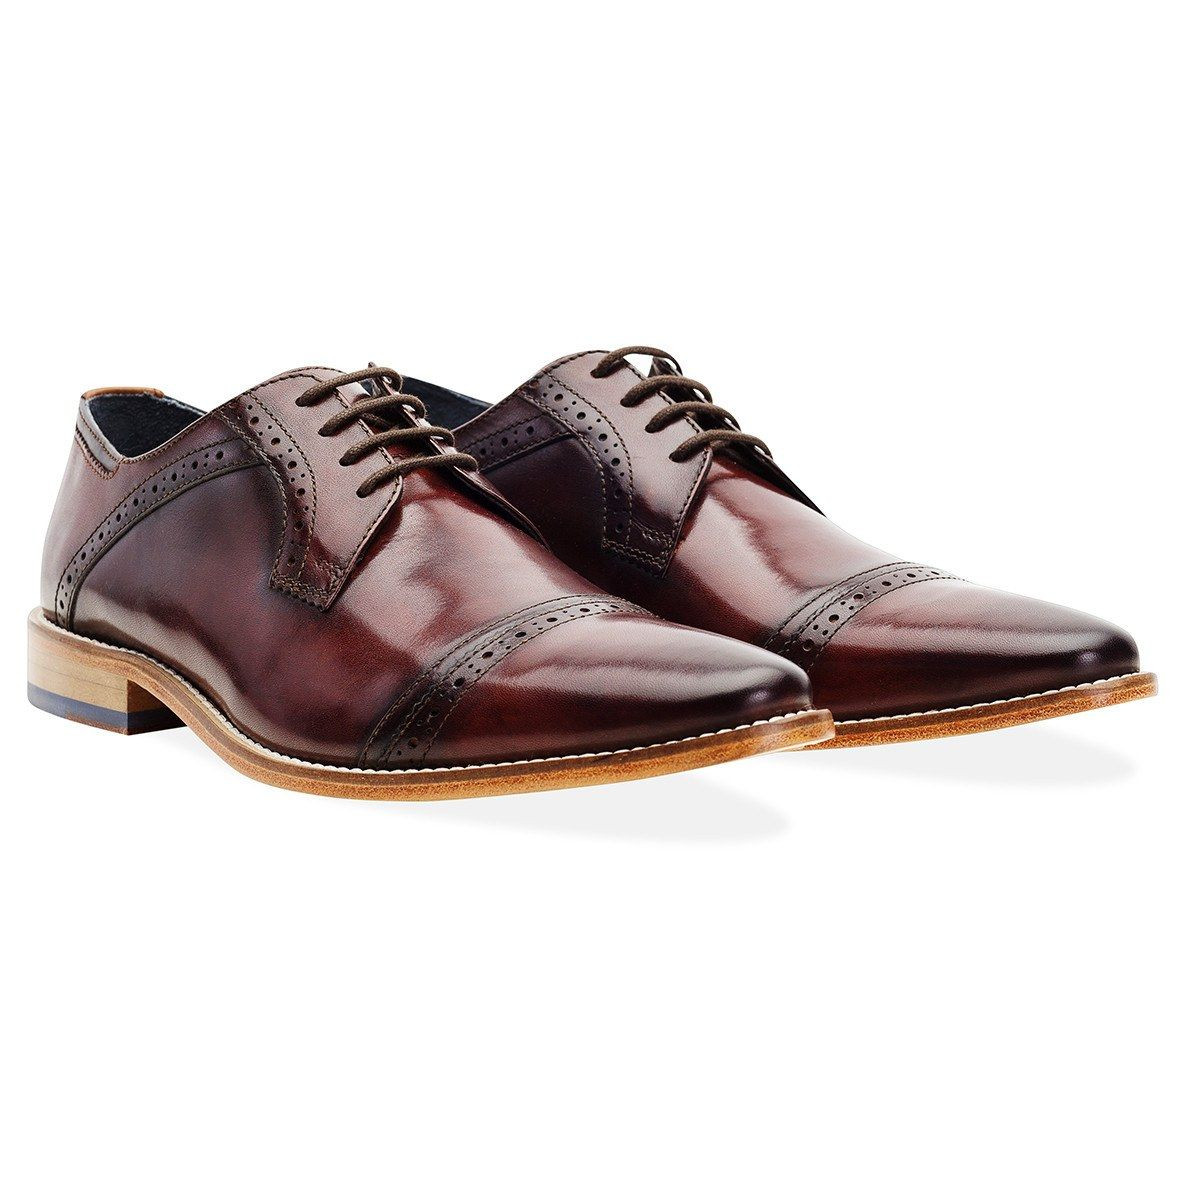 Goodwin Smith Shoes